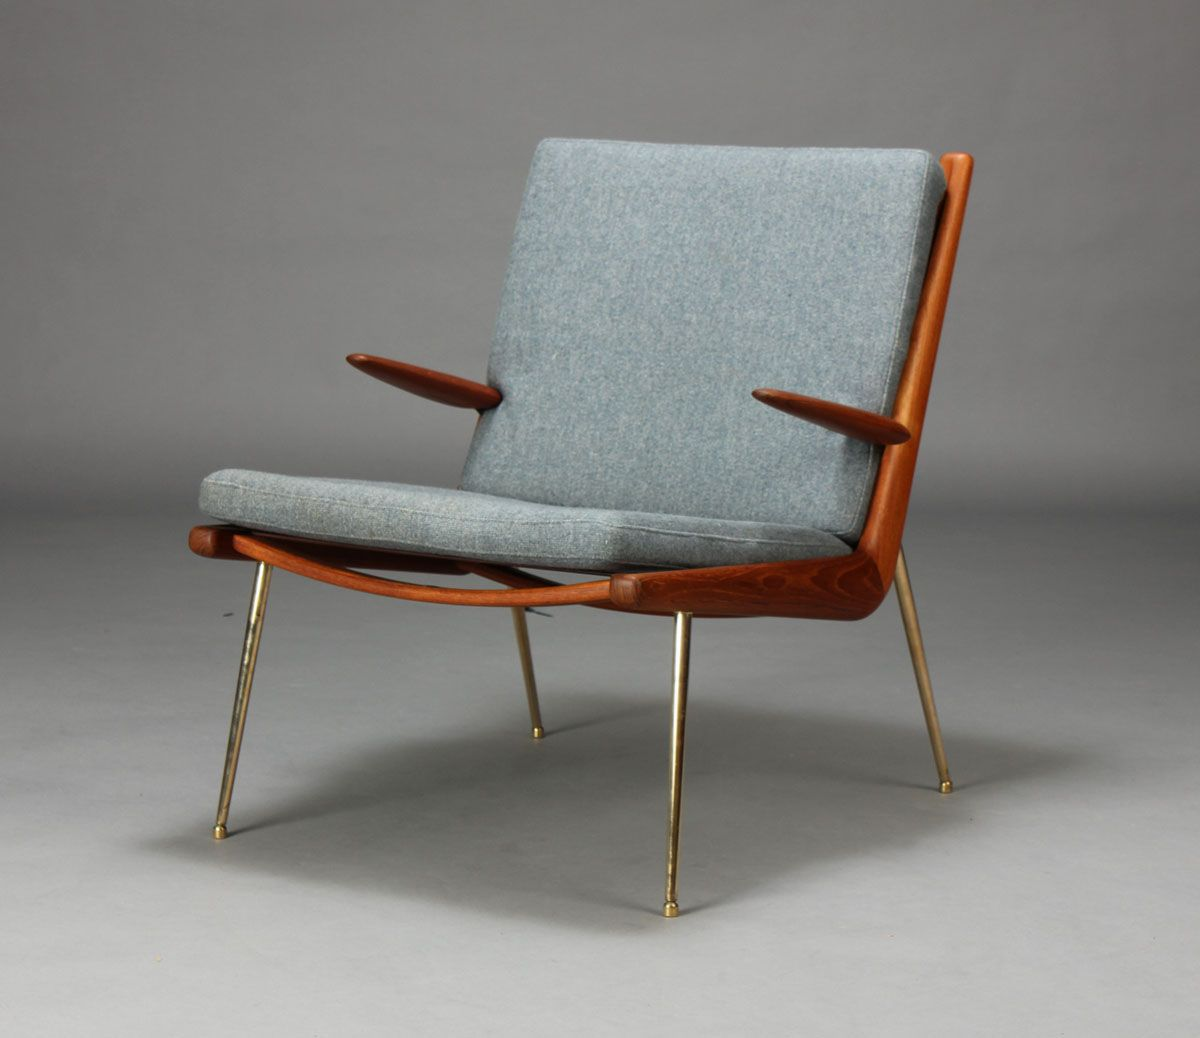 Cool Modern Chairs Peter Hvidt And Orla Mølgaard Nielsen Boomerang Chair